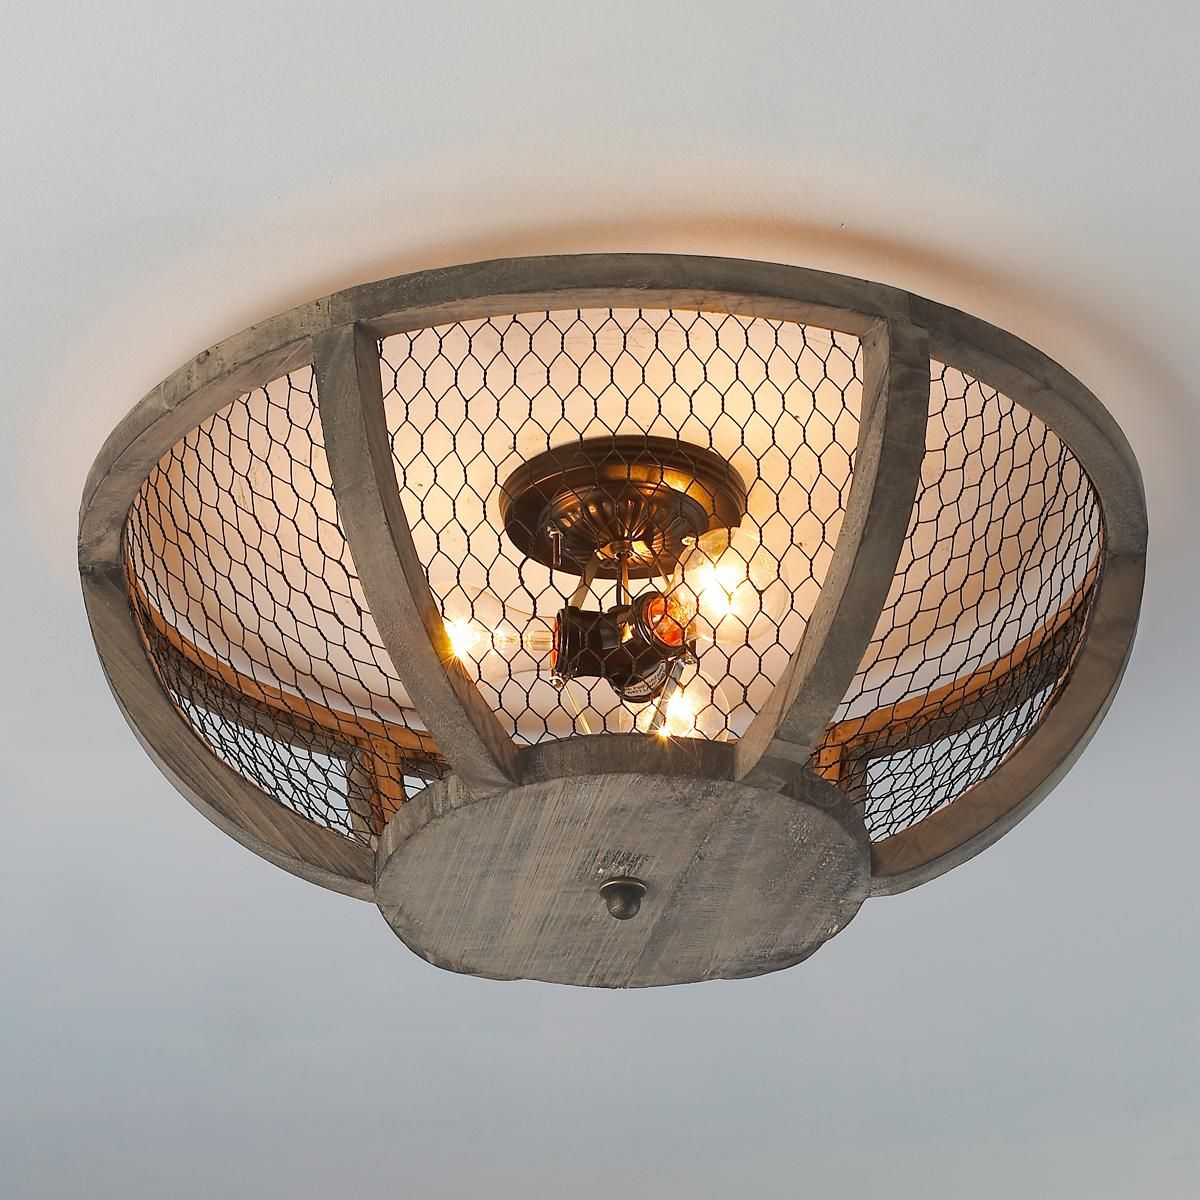 Chicken Wire Basket Ceiling Light Small Basket lighting